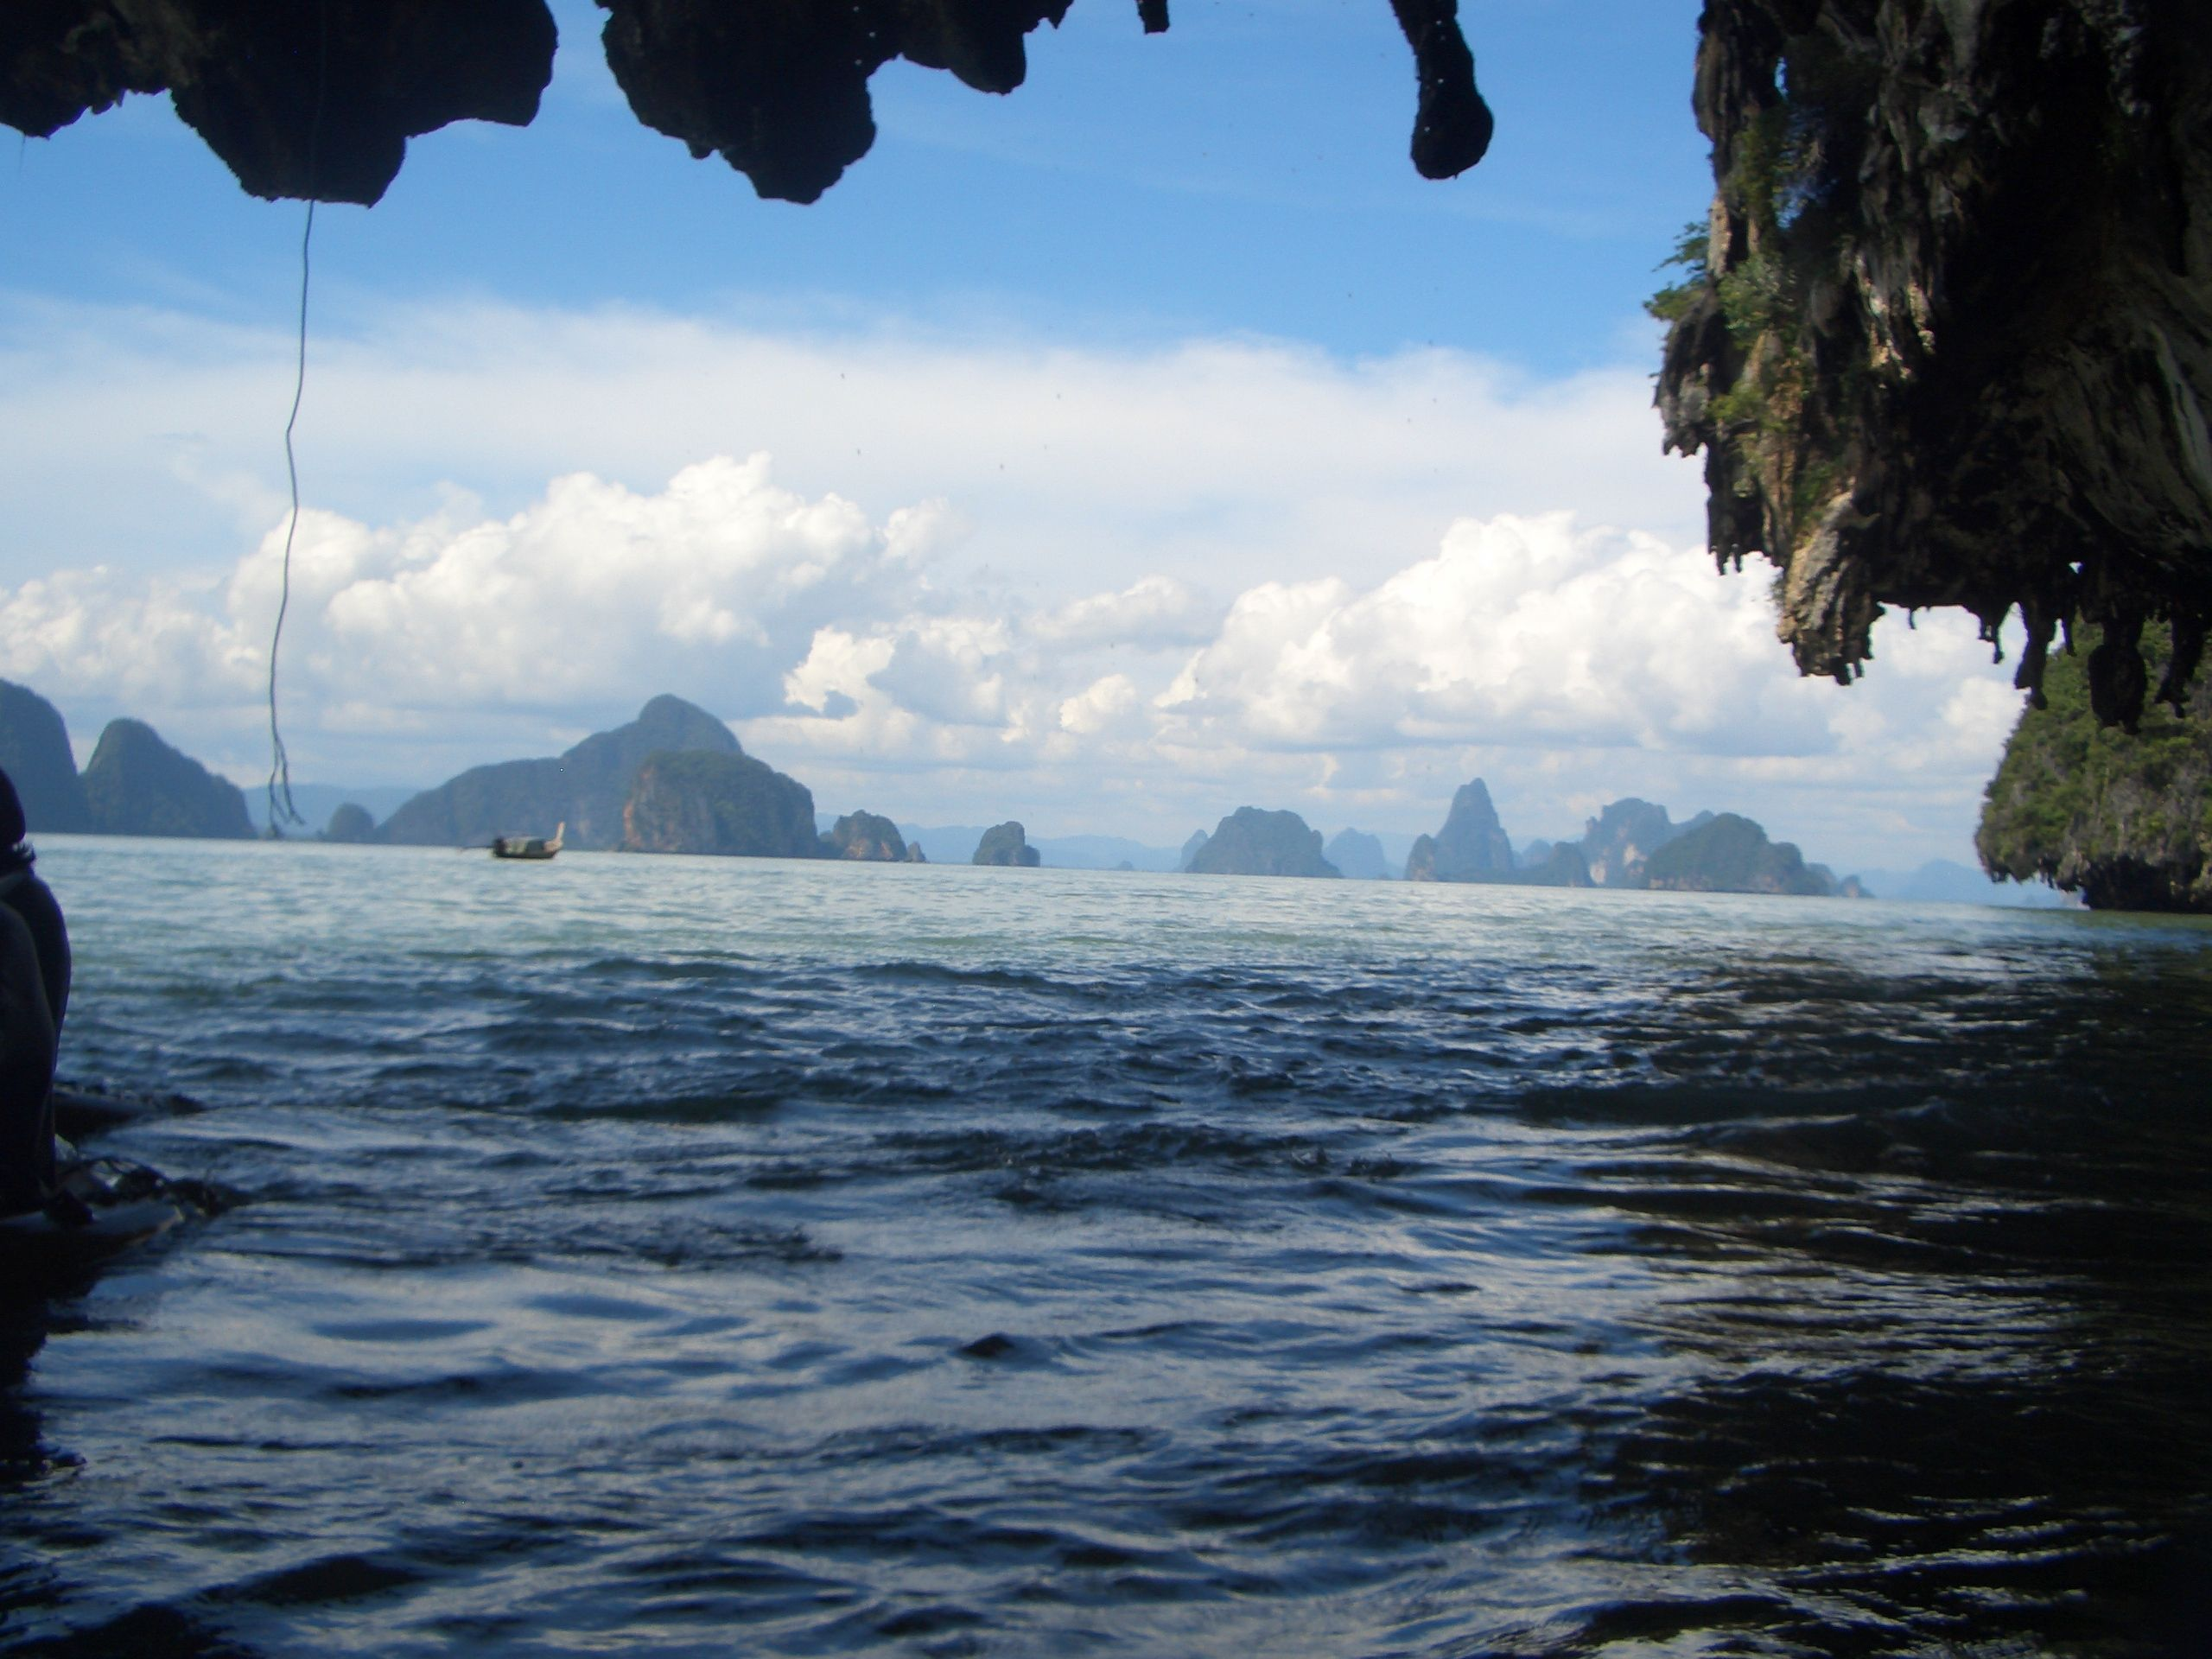 Thailand...fishing tether hanging down on left side to assist with navigation.